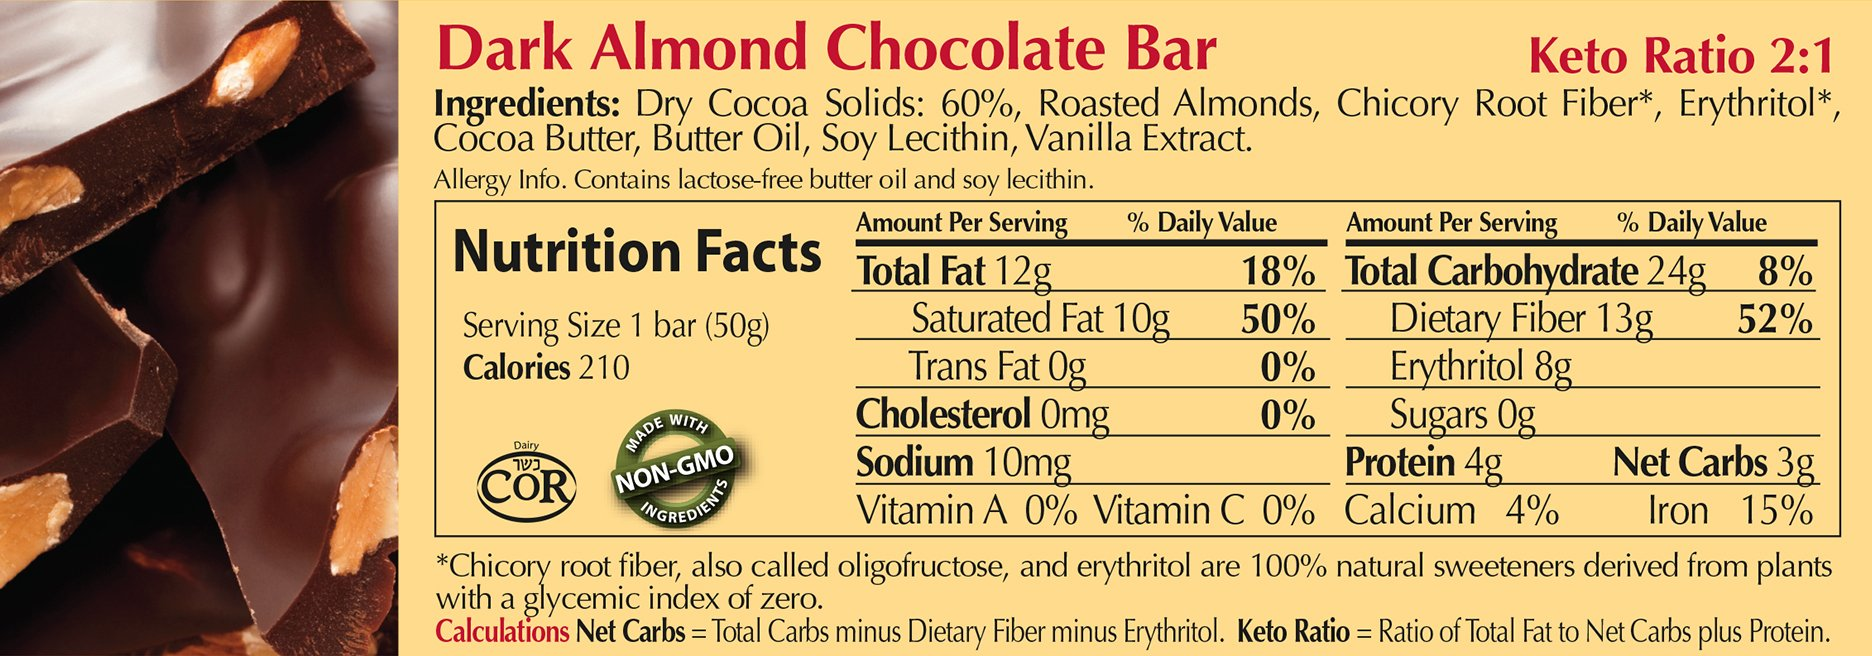 ChocoPerfection Dark Almond Sugar Free Chocolate, Gift Box of 12 50g Bars by ChocoPerfection (Image #3)